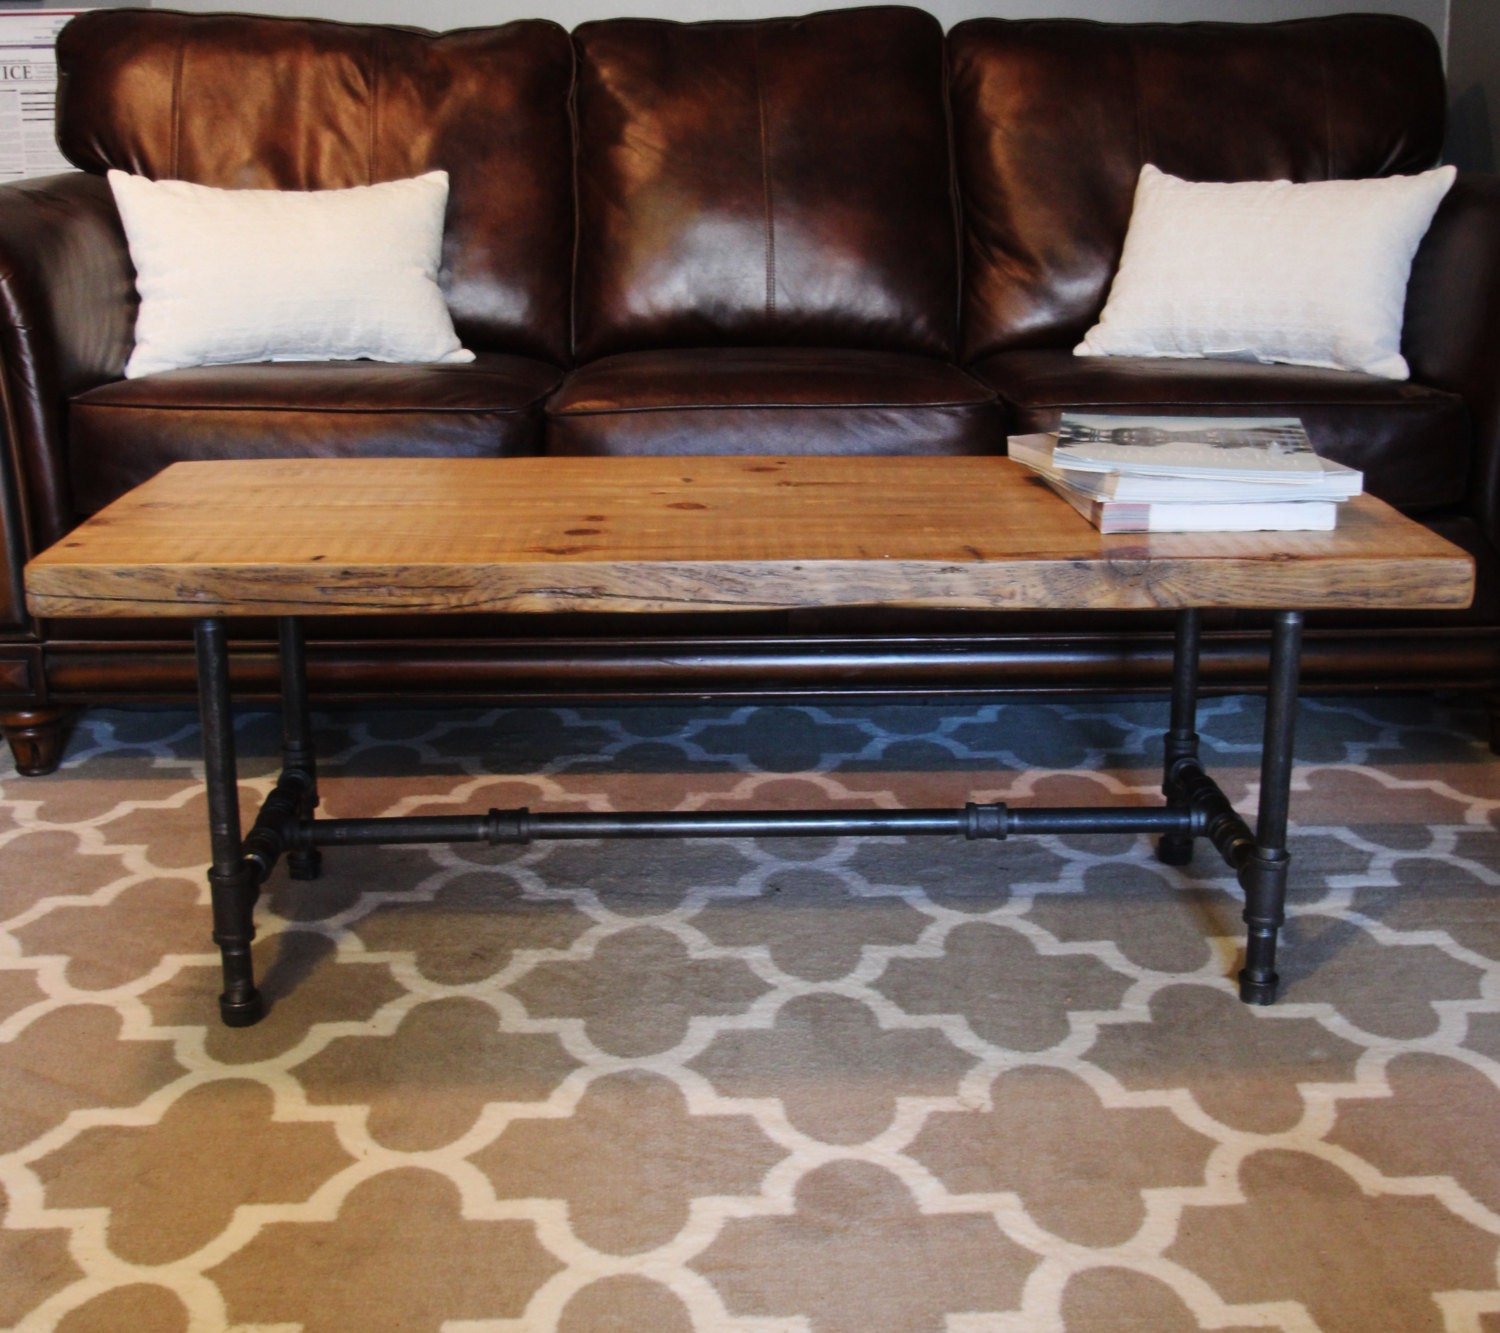 Industrial Urban Wood Reclaimed Coffee Table Or Media By Dendroco